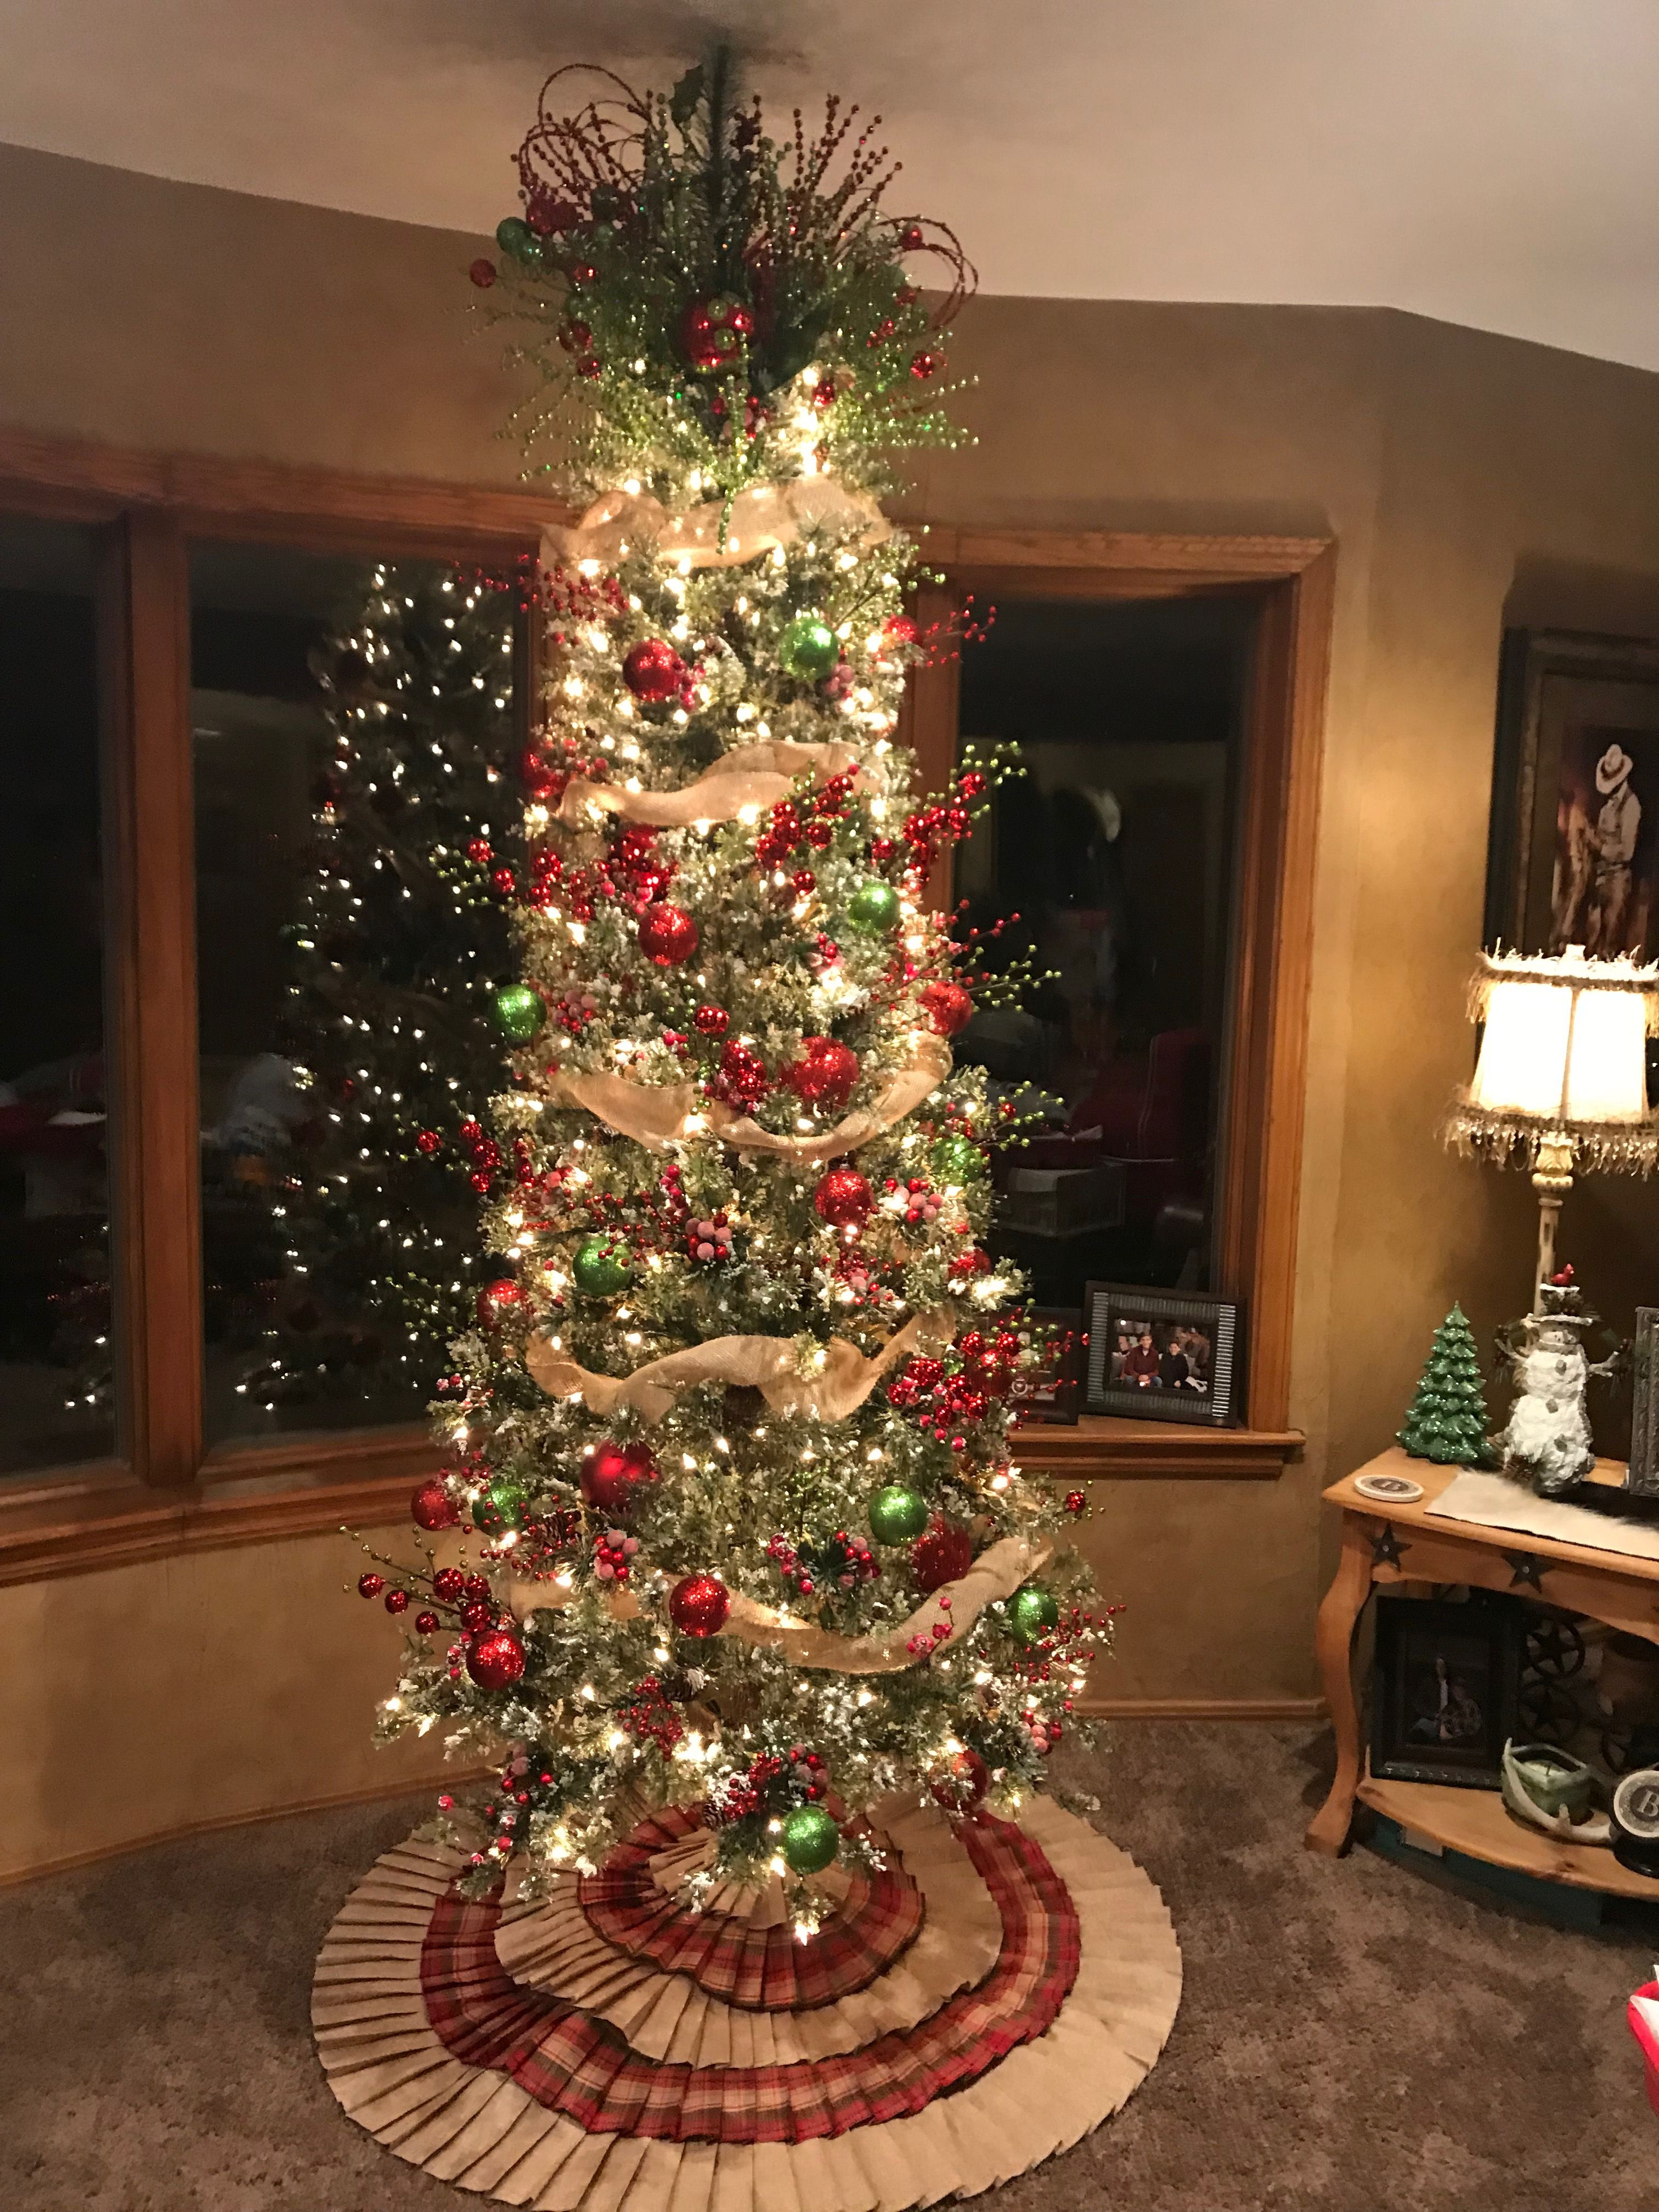 Country Christmas Background.Country Christmas Tree Holidays Country Christmas Trees